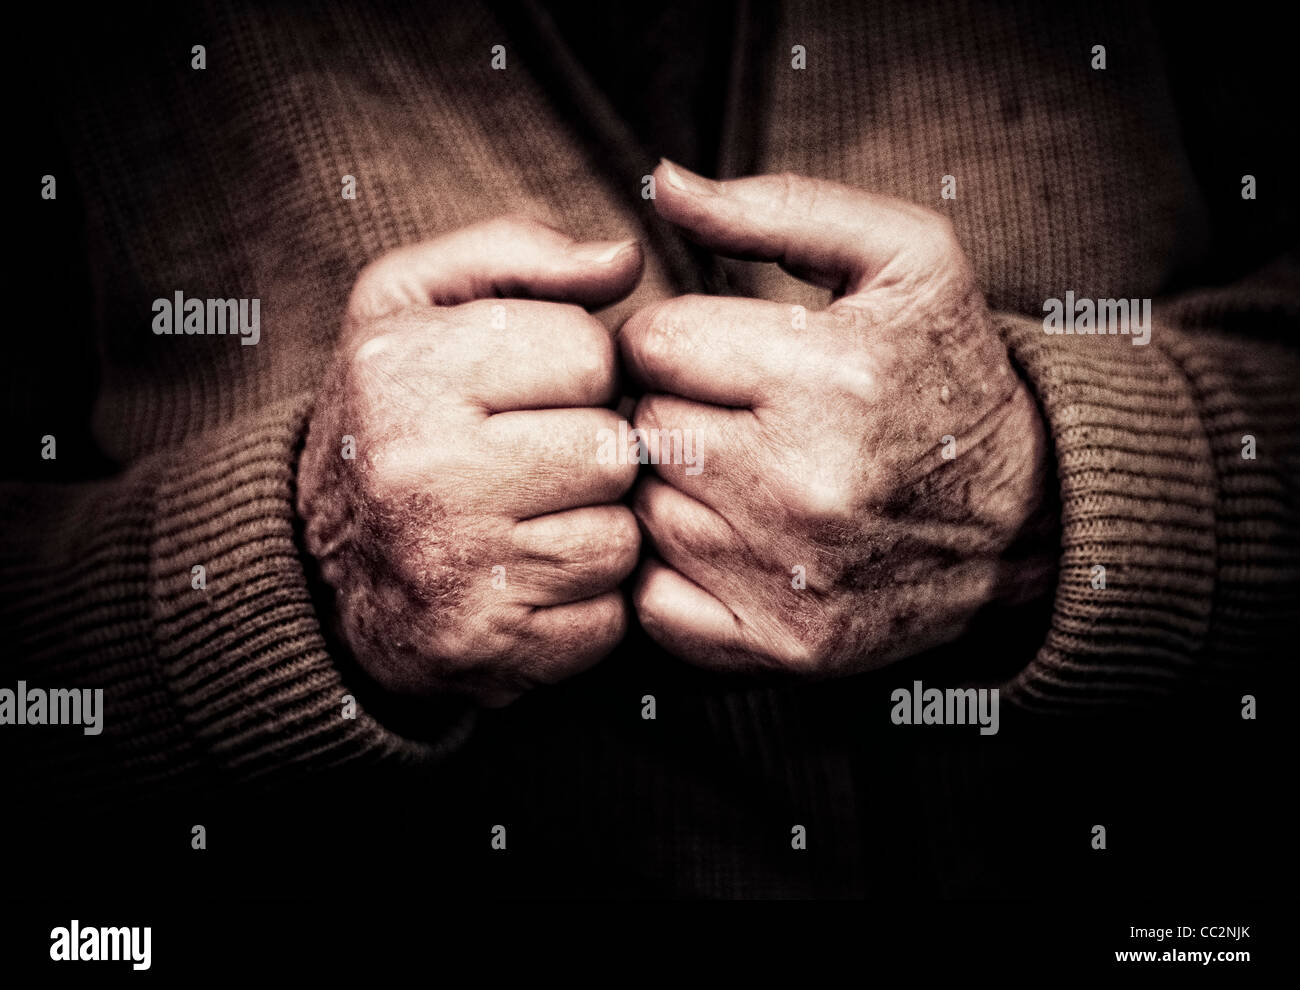 old mans hands stock photos old mans hands stock images alamy old man s hands clenched into fists stock image